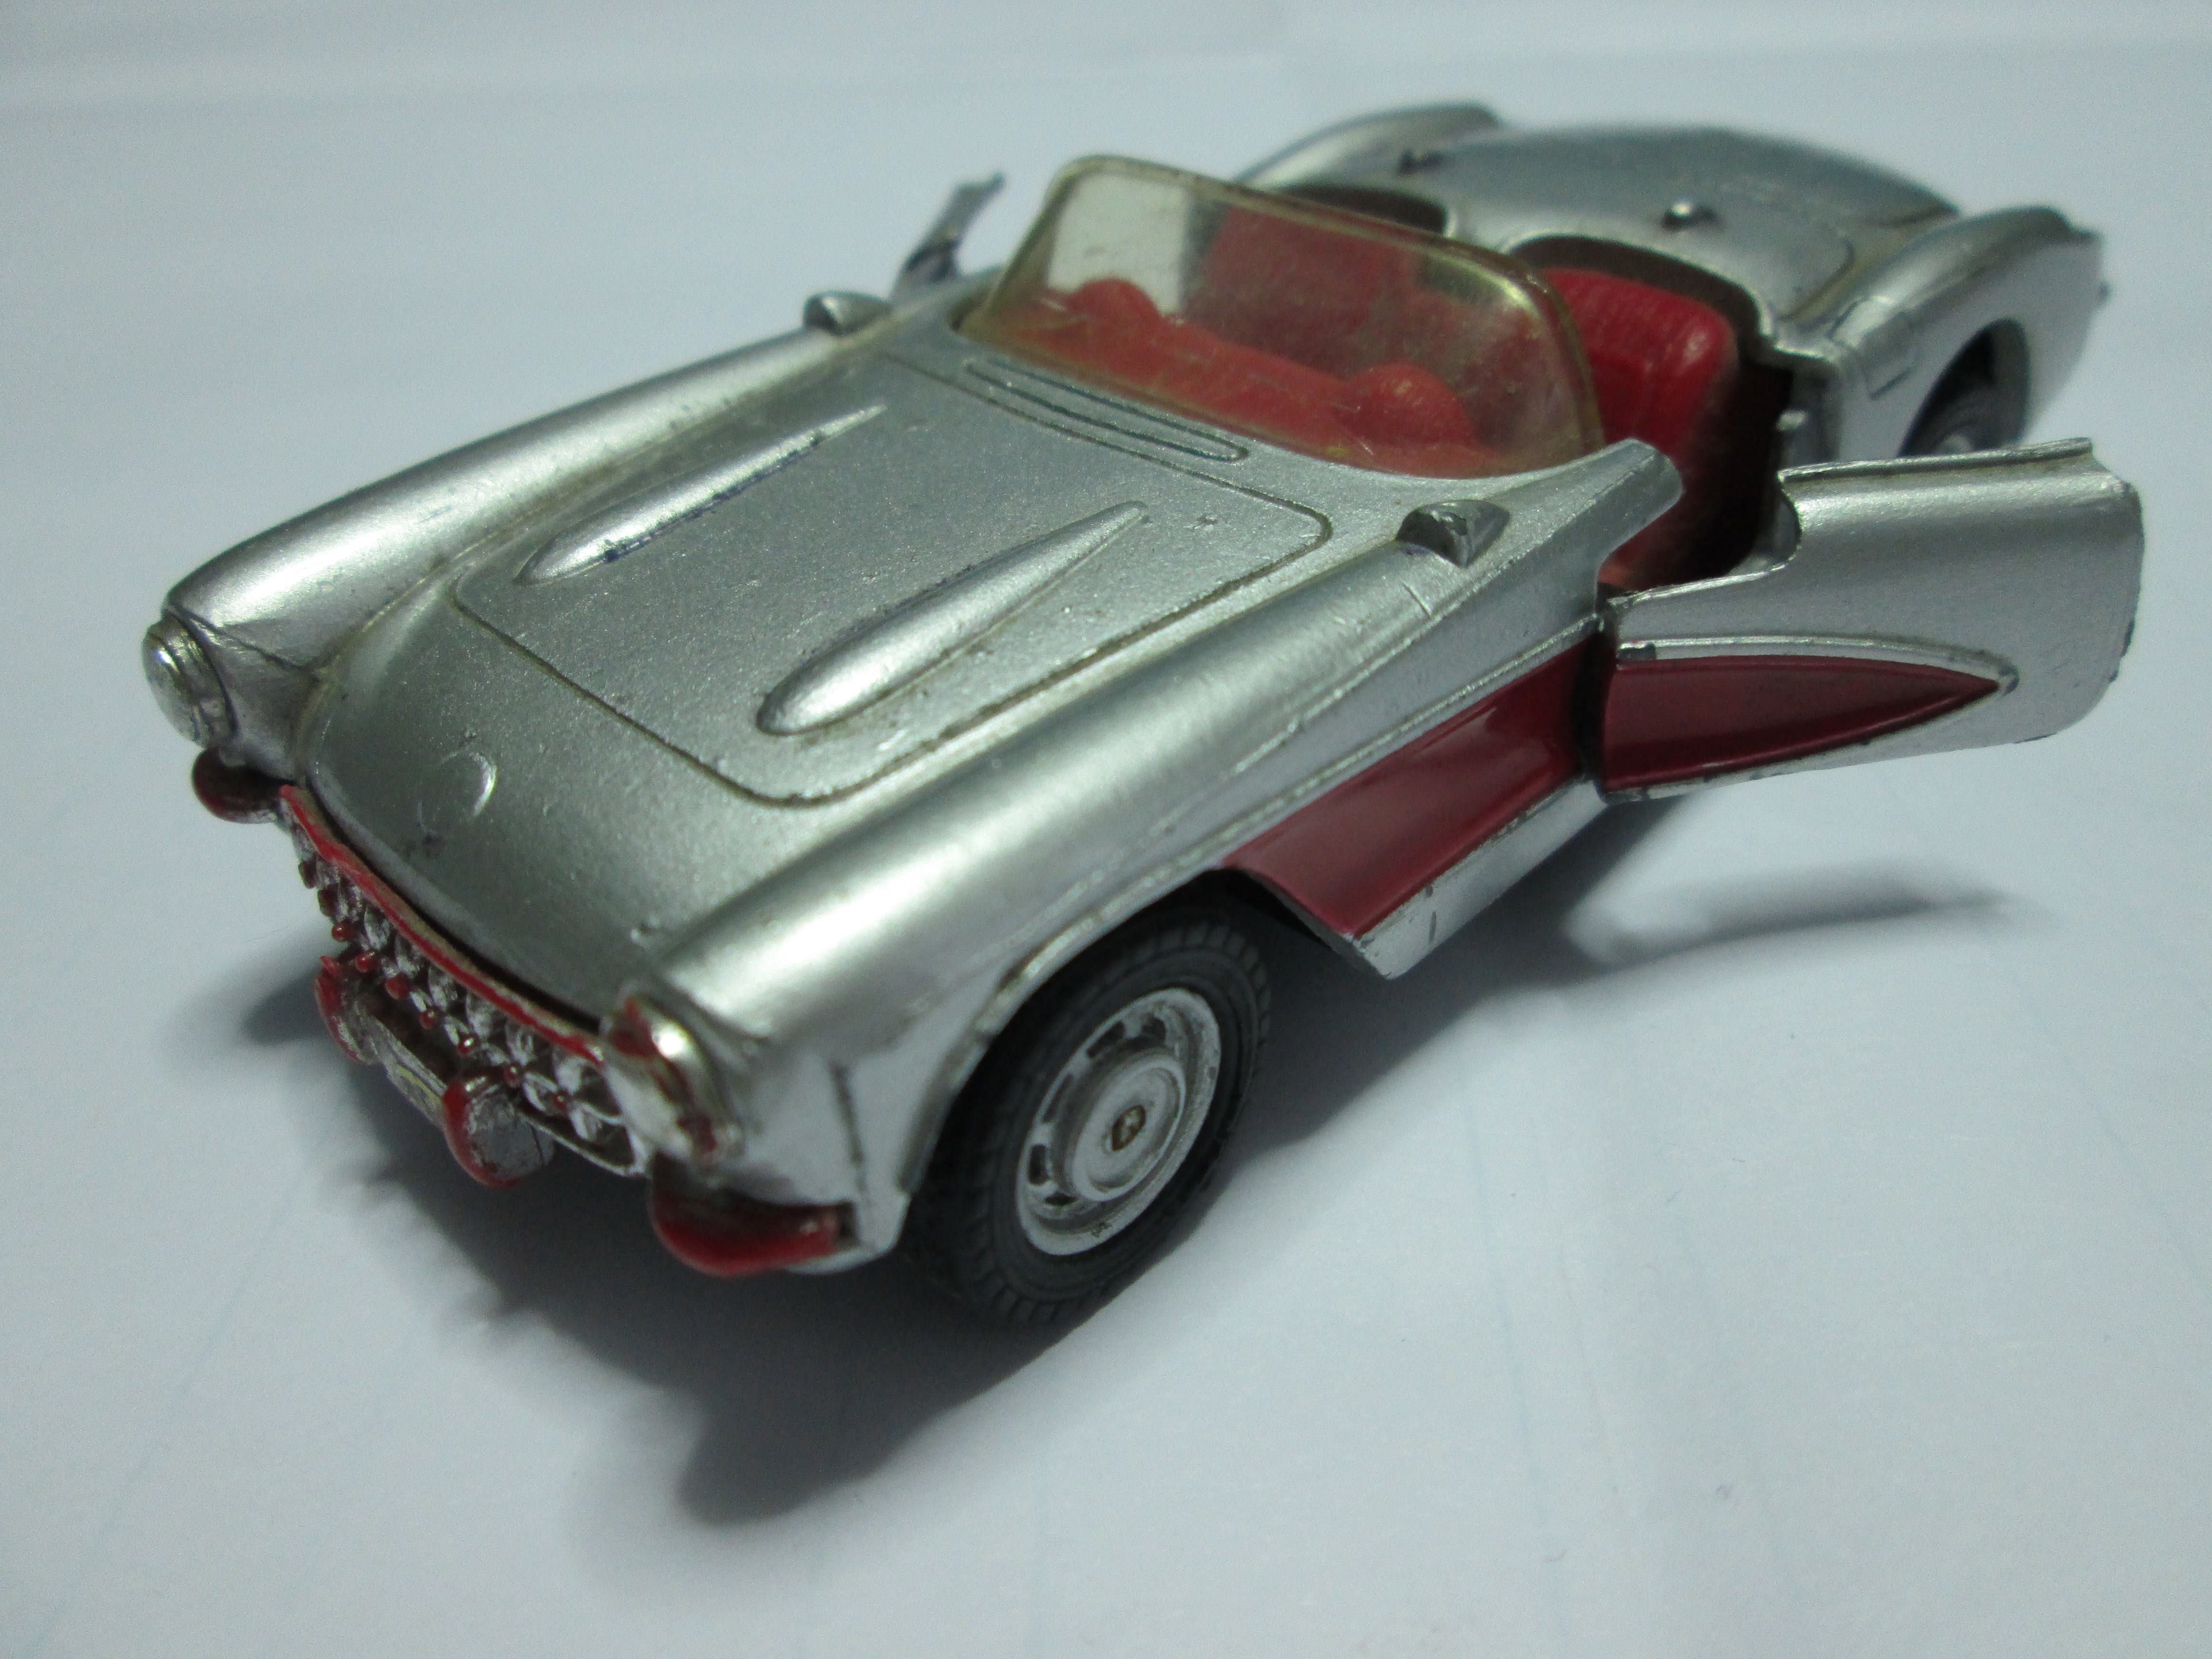 model cars, toy cars